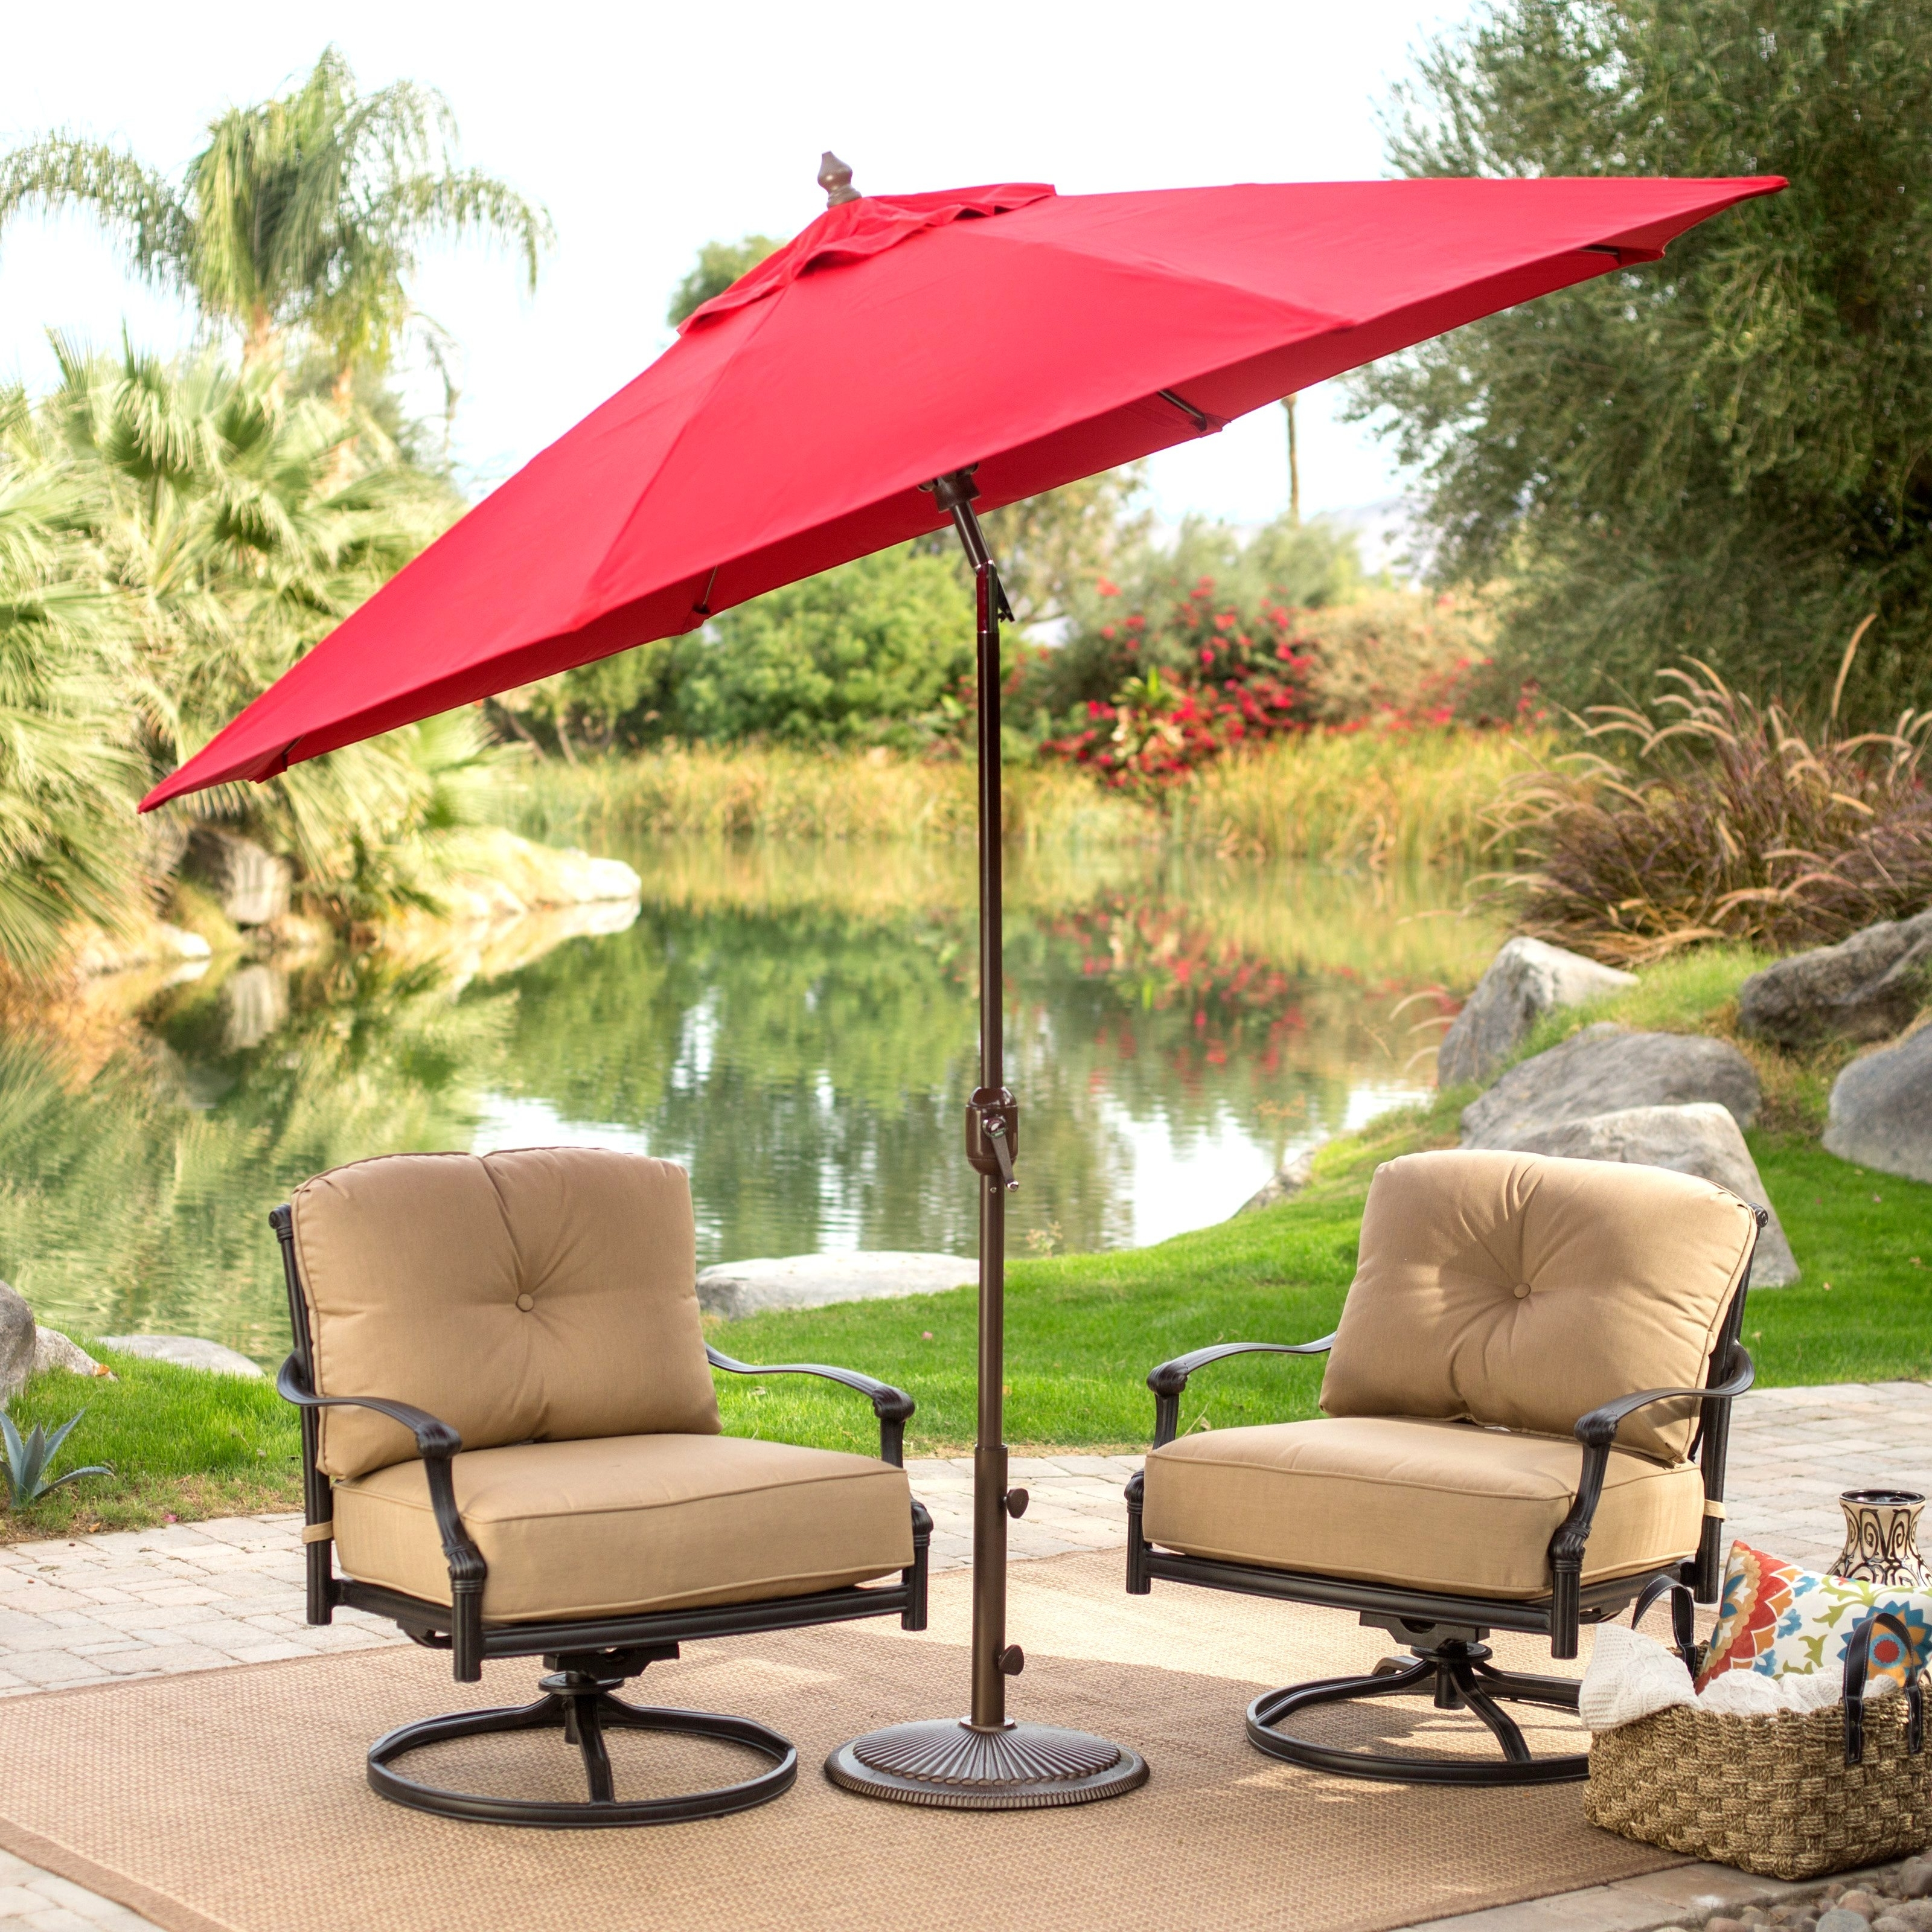 Best And Newest Free Standing Patio Umbrellas With 25 Fresh Patio Umbrella Free Standing (View 3 of 20)